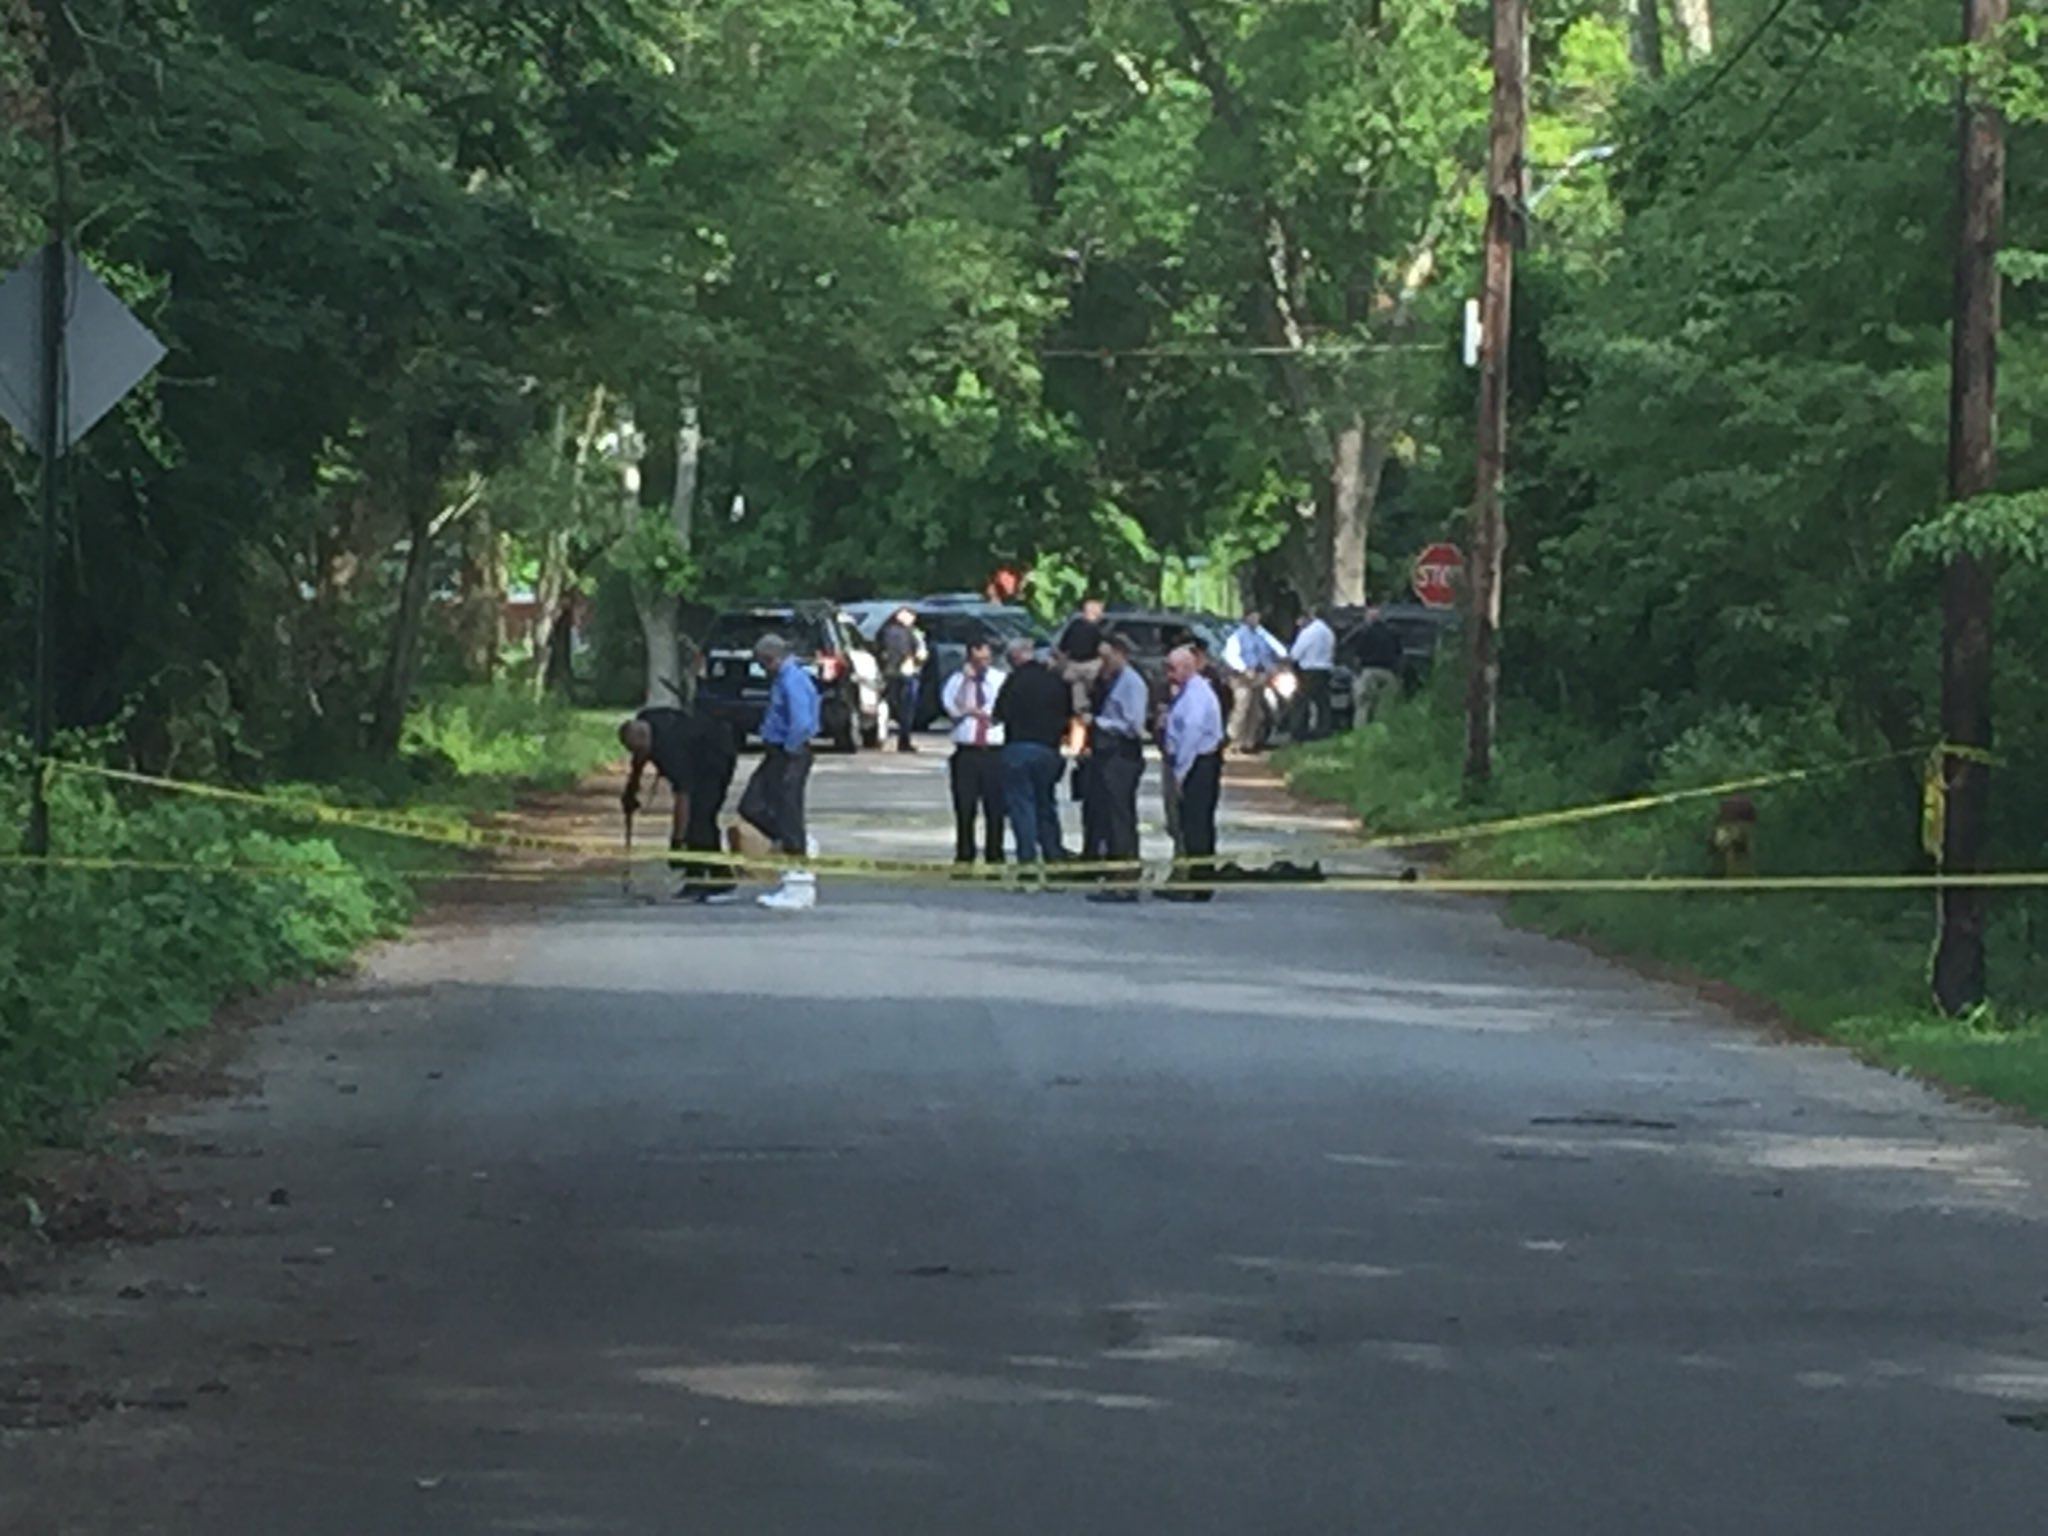 Police investigating burned body found in Attleboro